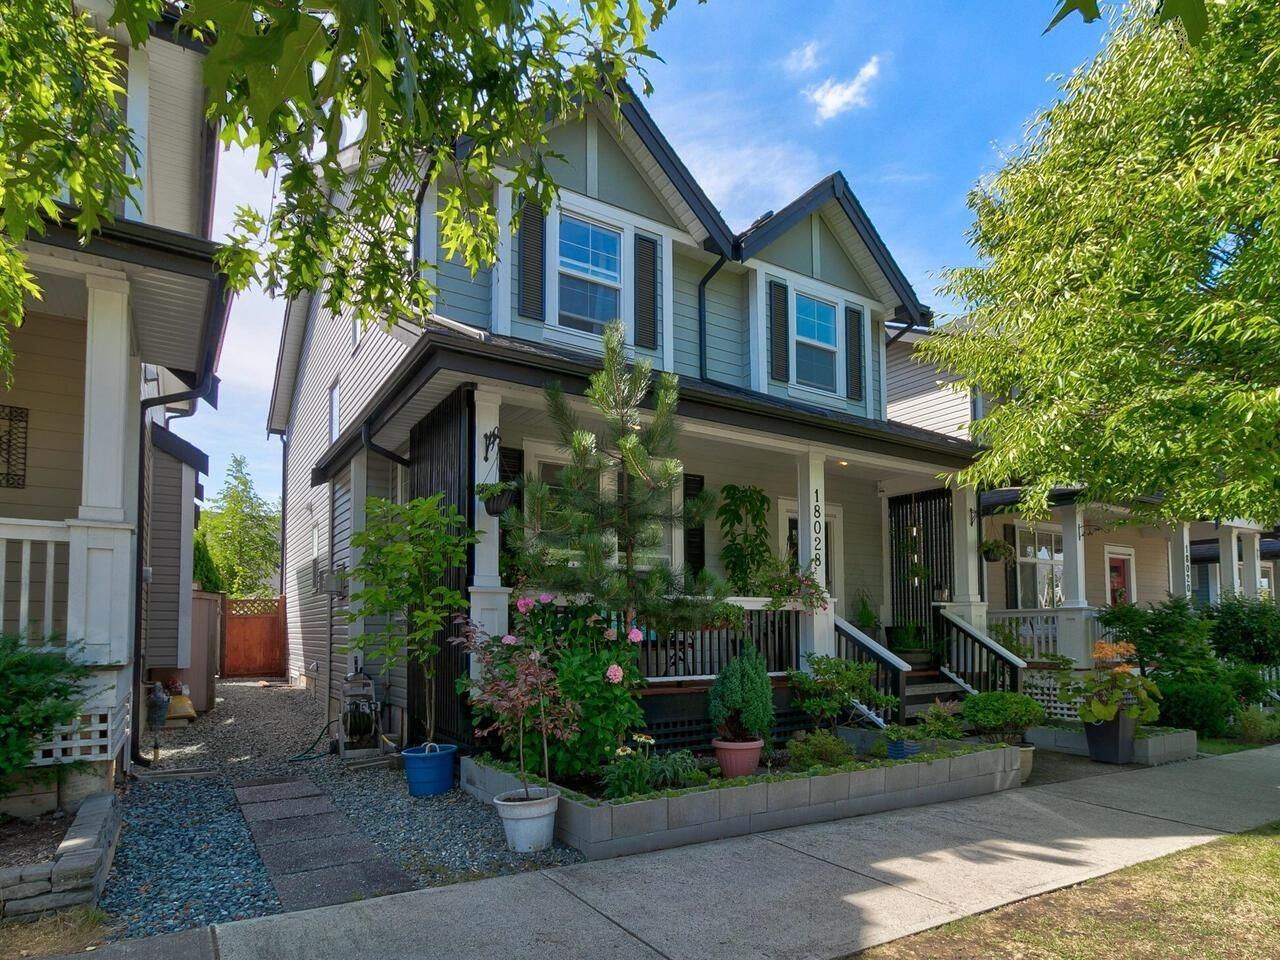 Main Photo: 18028 70A Avenue in Surrey: Cloverdale BC House for sale (Cloverdale)  : MLS®# R2609131